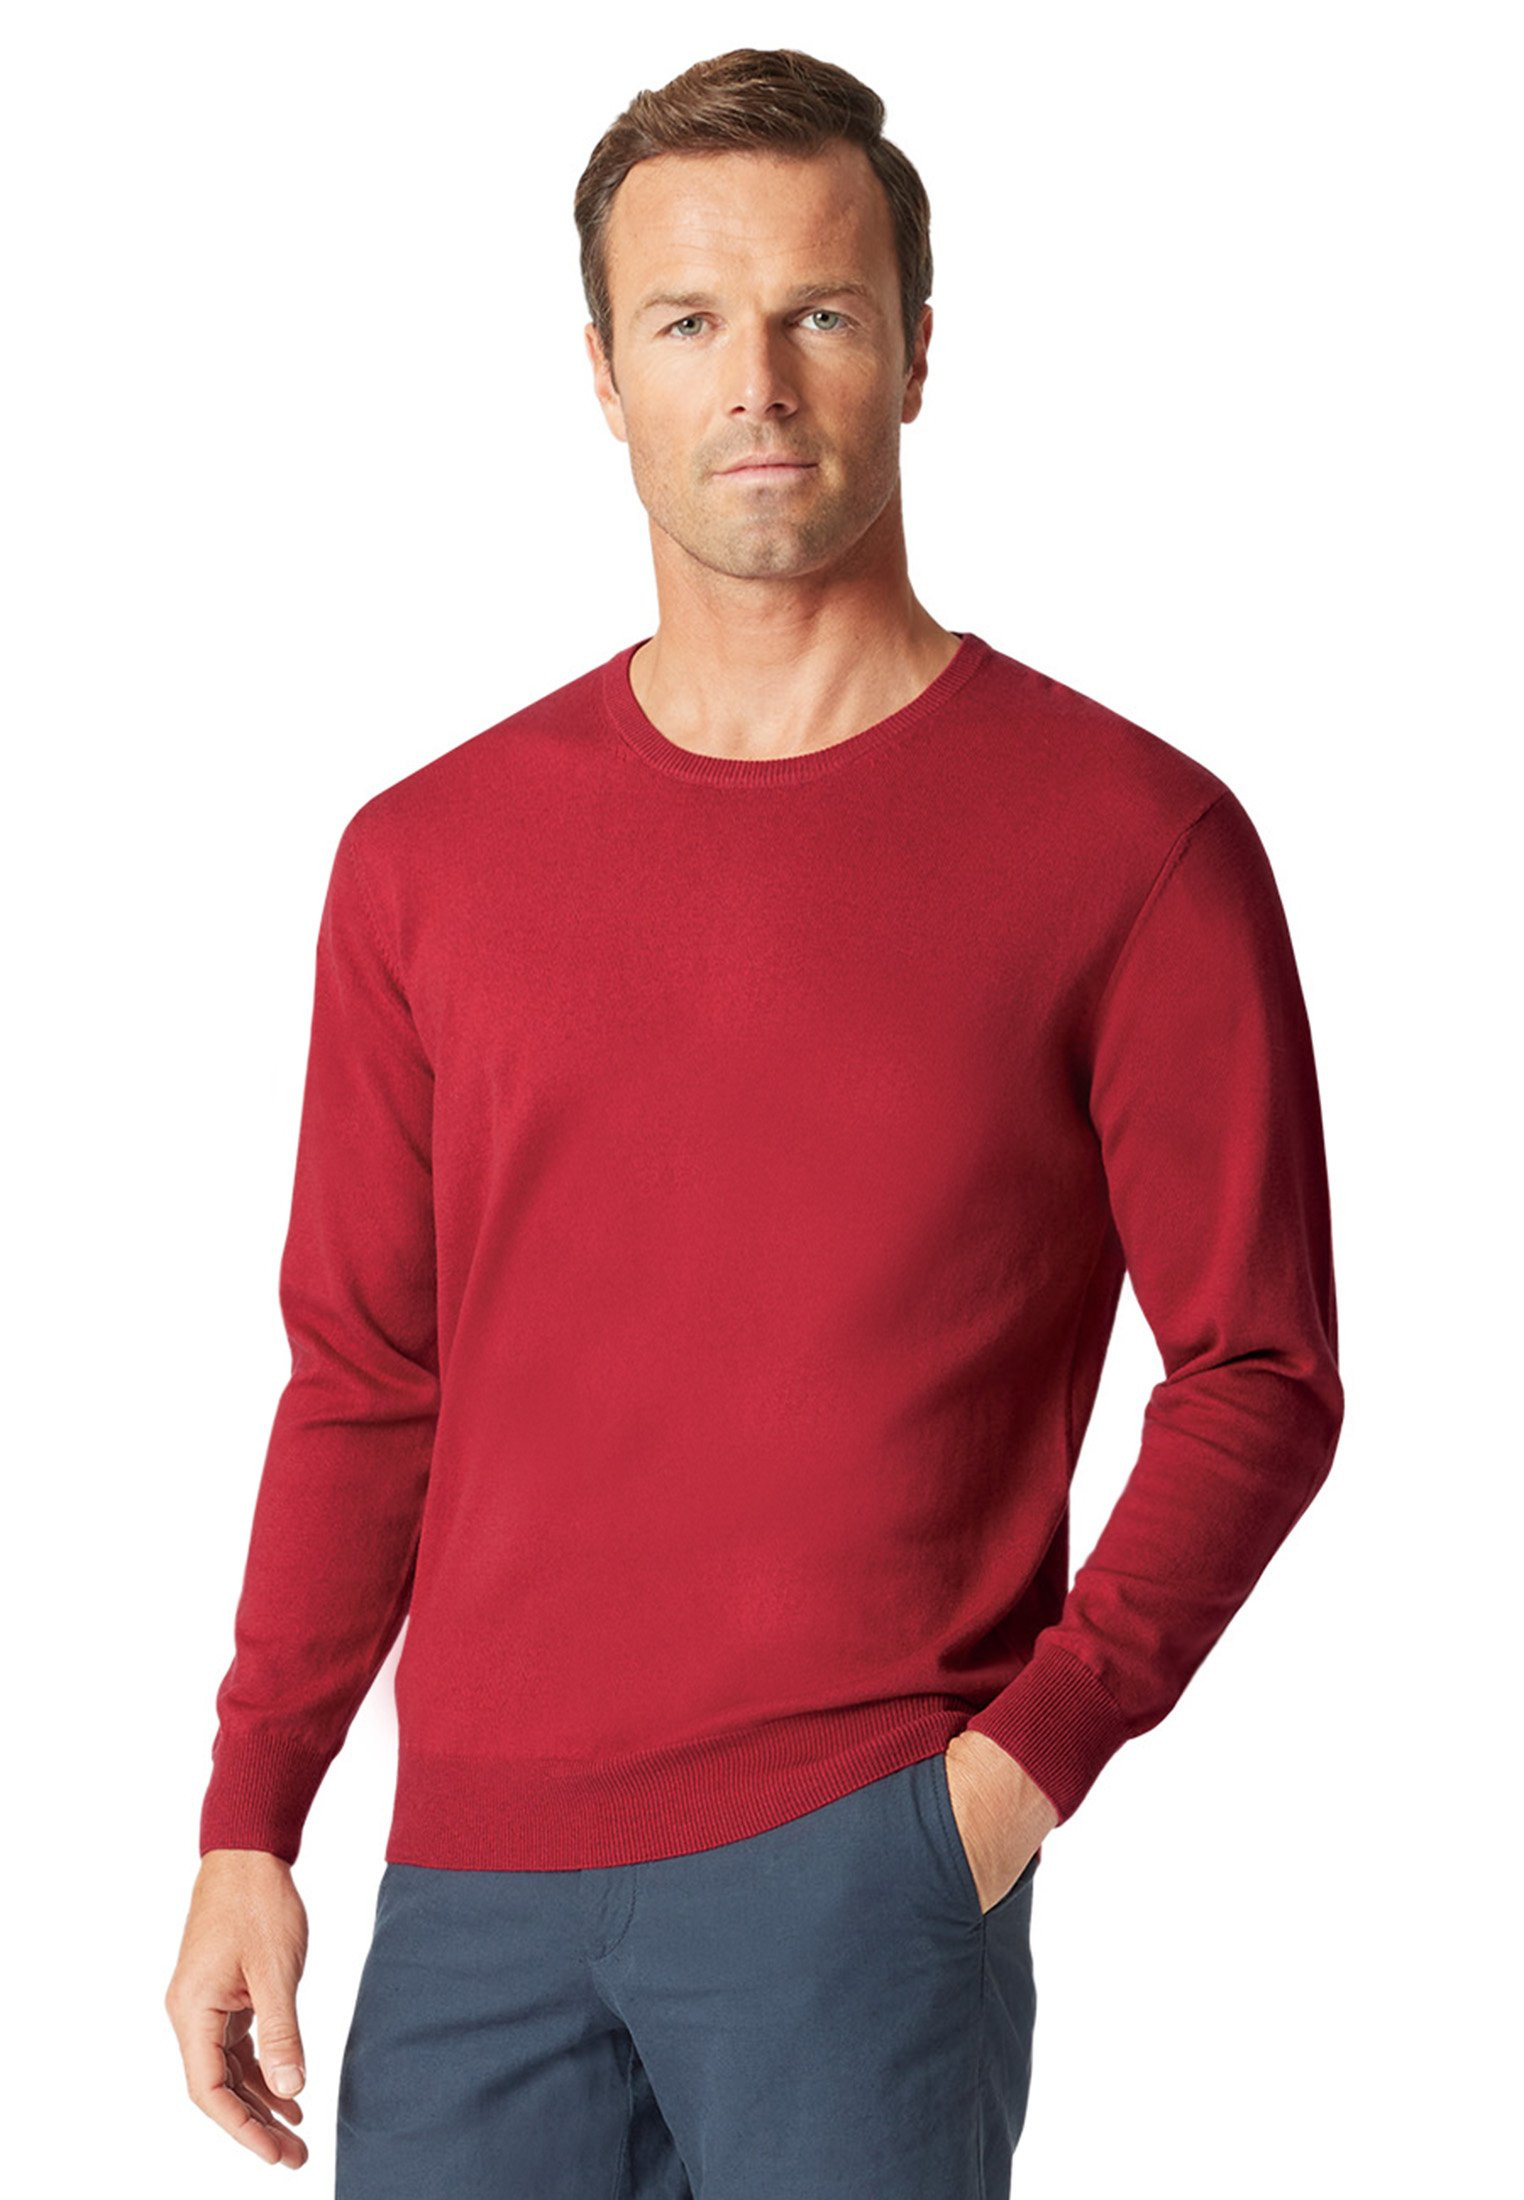 Aylsham Claret Luxury Cotton Merino Crew Neck Sweater